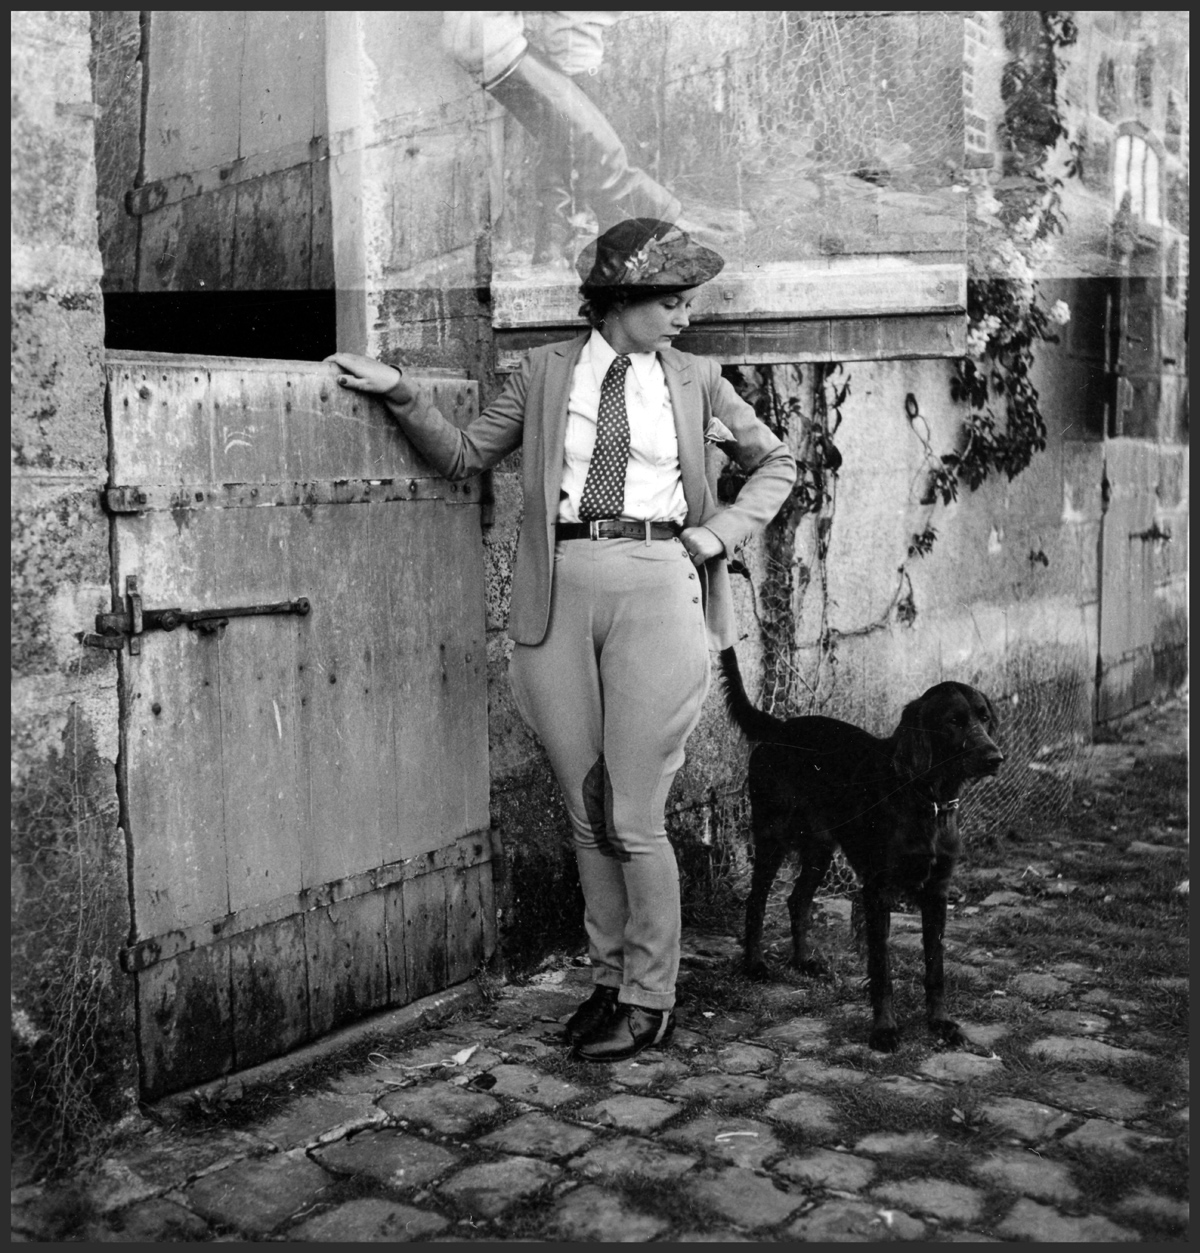 Black and white photo of a woman and dog, likely circa 1935.